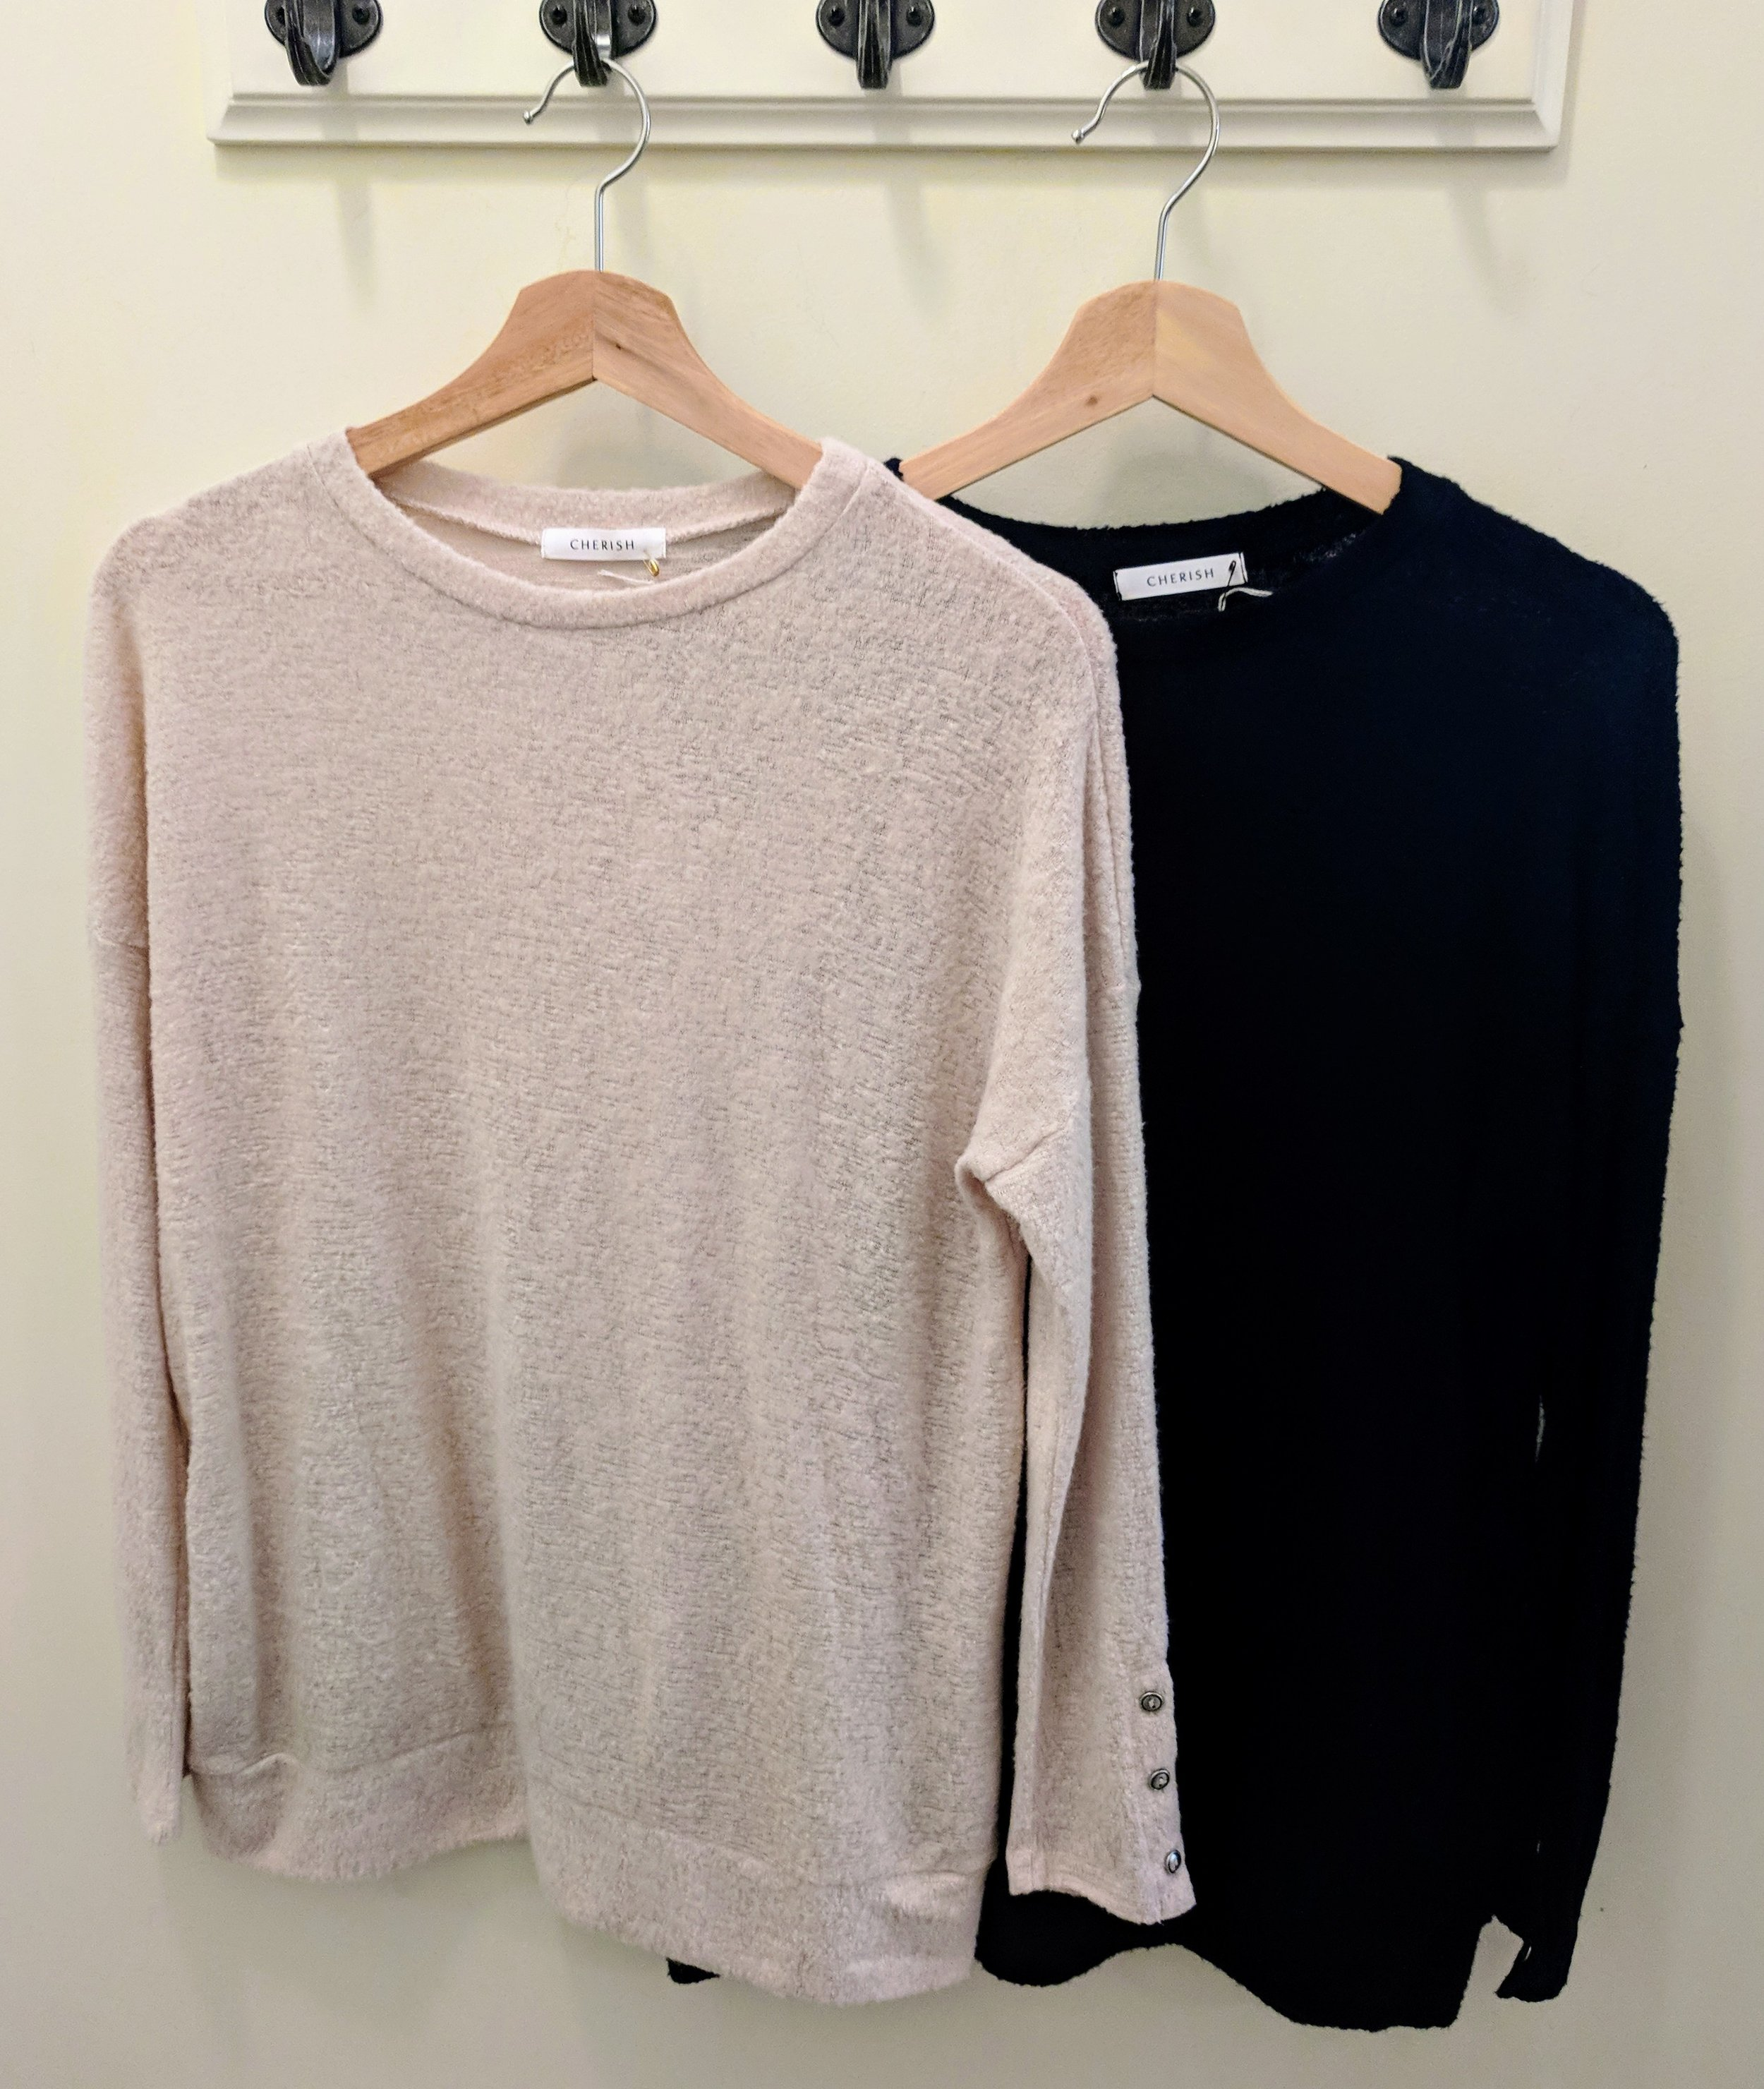 Cream and Black sweater with drop shoulder and button sleeves.